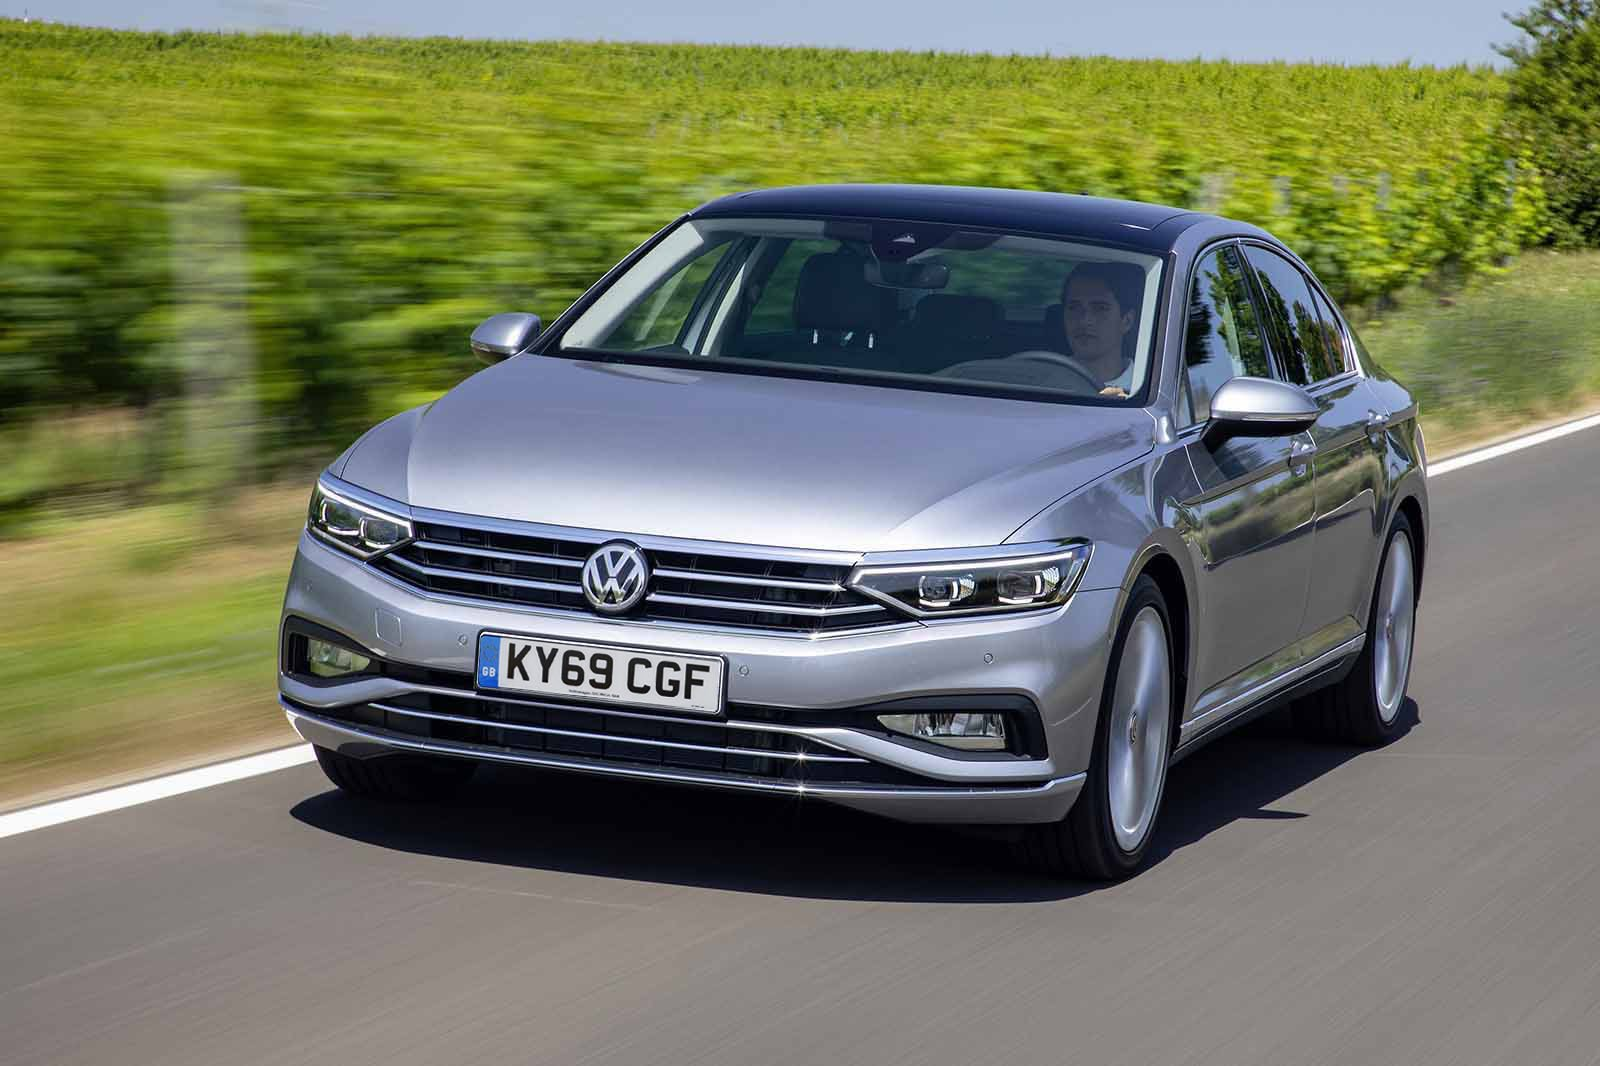 Volkswagen Passat 2019 facelift UK reg